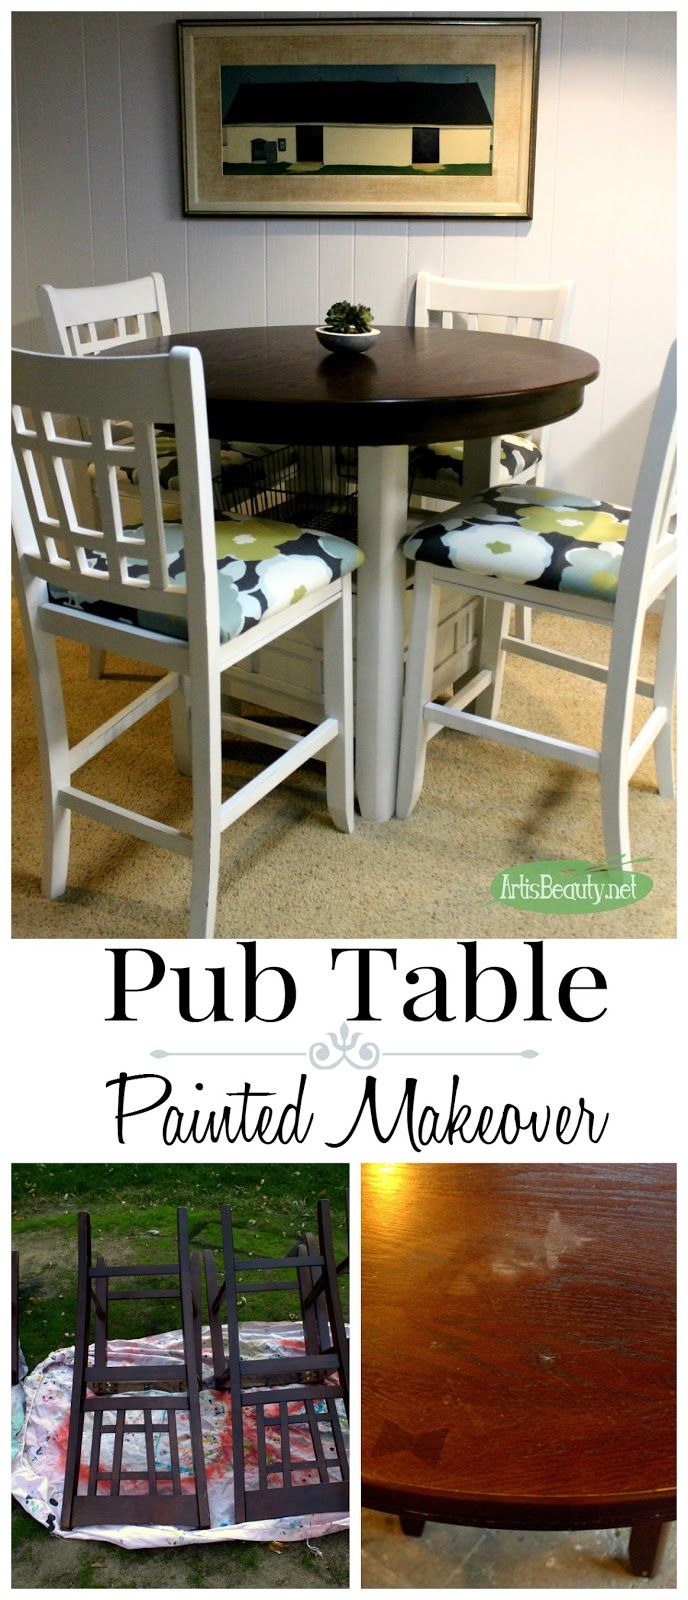 best  pub style table ideas on pinterest  diy pub style table  - art is beauty fixer upper style painted pub table makeover